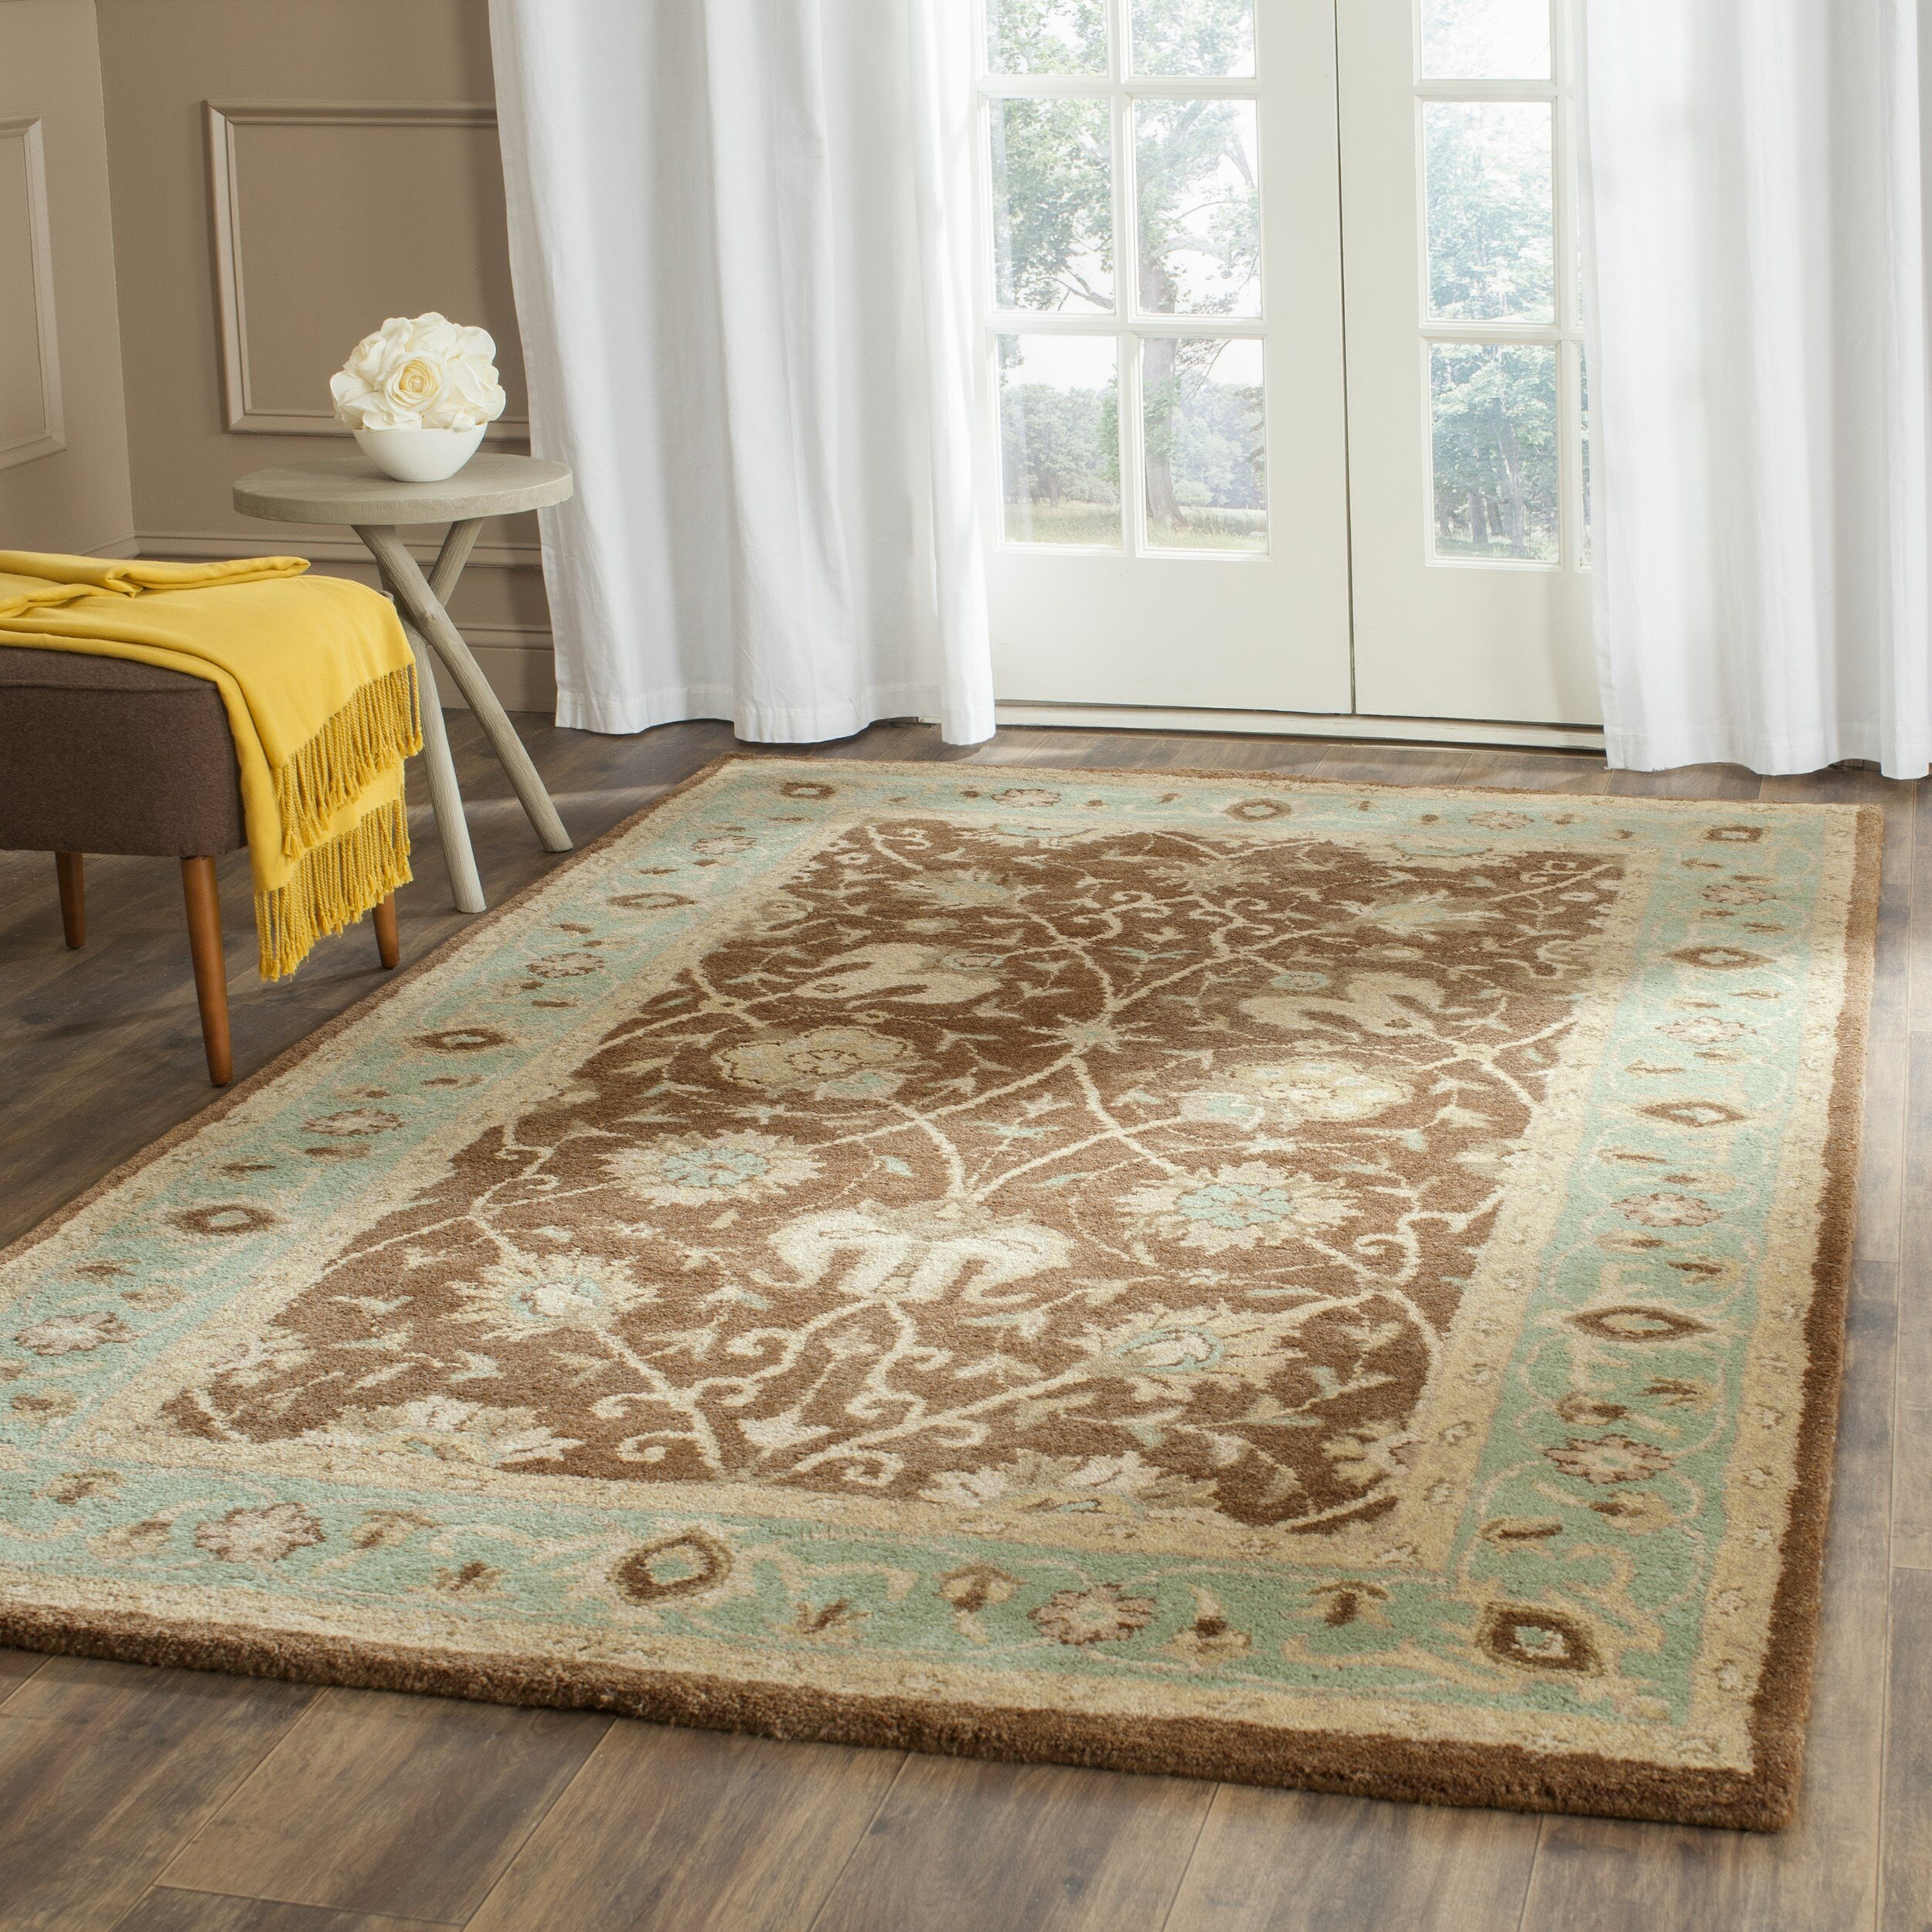 Safavieh Antiquities Brown/Green Area Rug